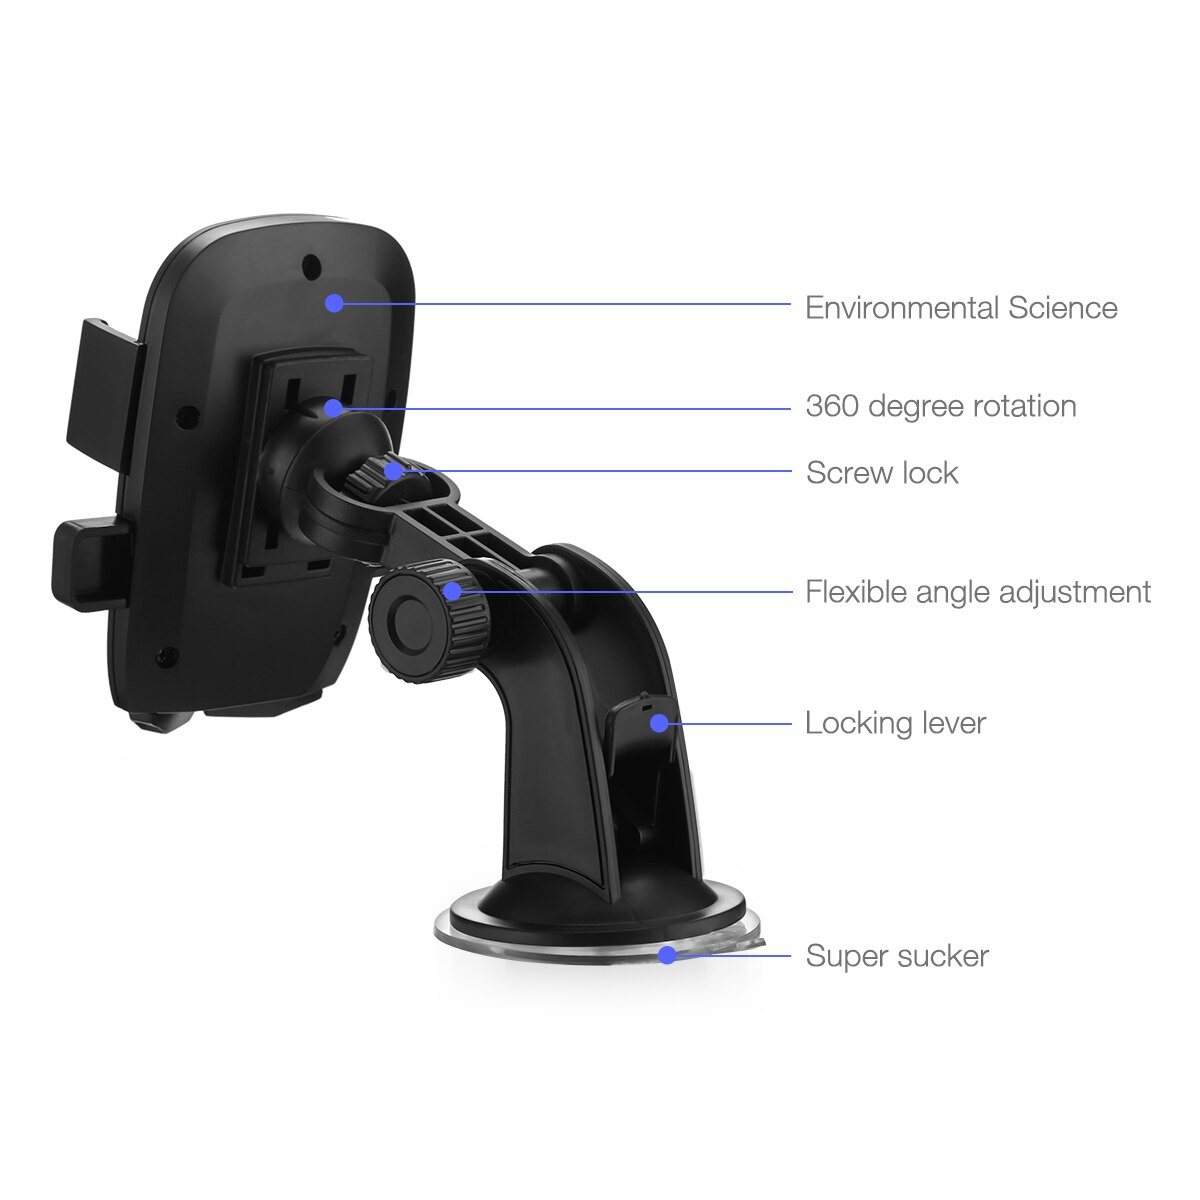 Hcffb12ab570a462dbdcfd443c0f64441h - 360 Degree Rotatable Car Phone Holder For 2.4 to 3.4inch Phone Mount Stand in Car Bracket For Poco x3 pro iPhone Xiaomi Samsung